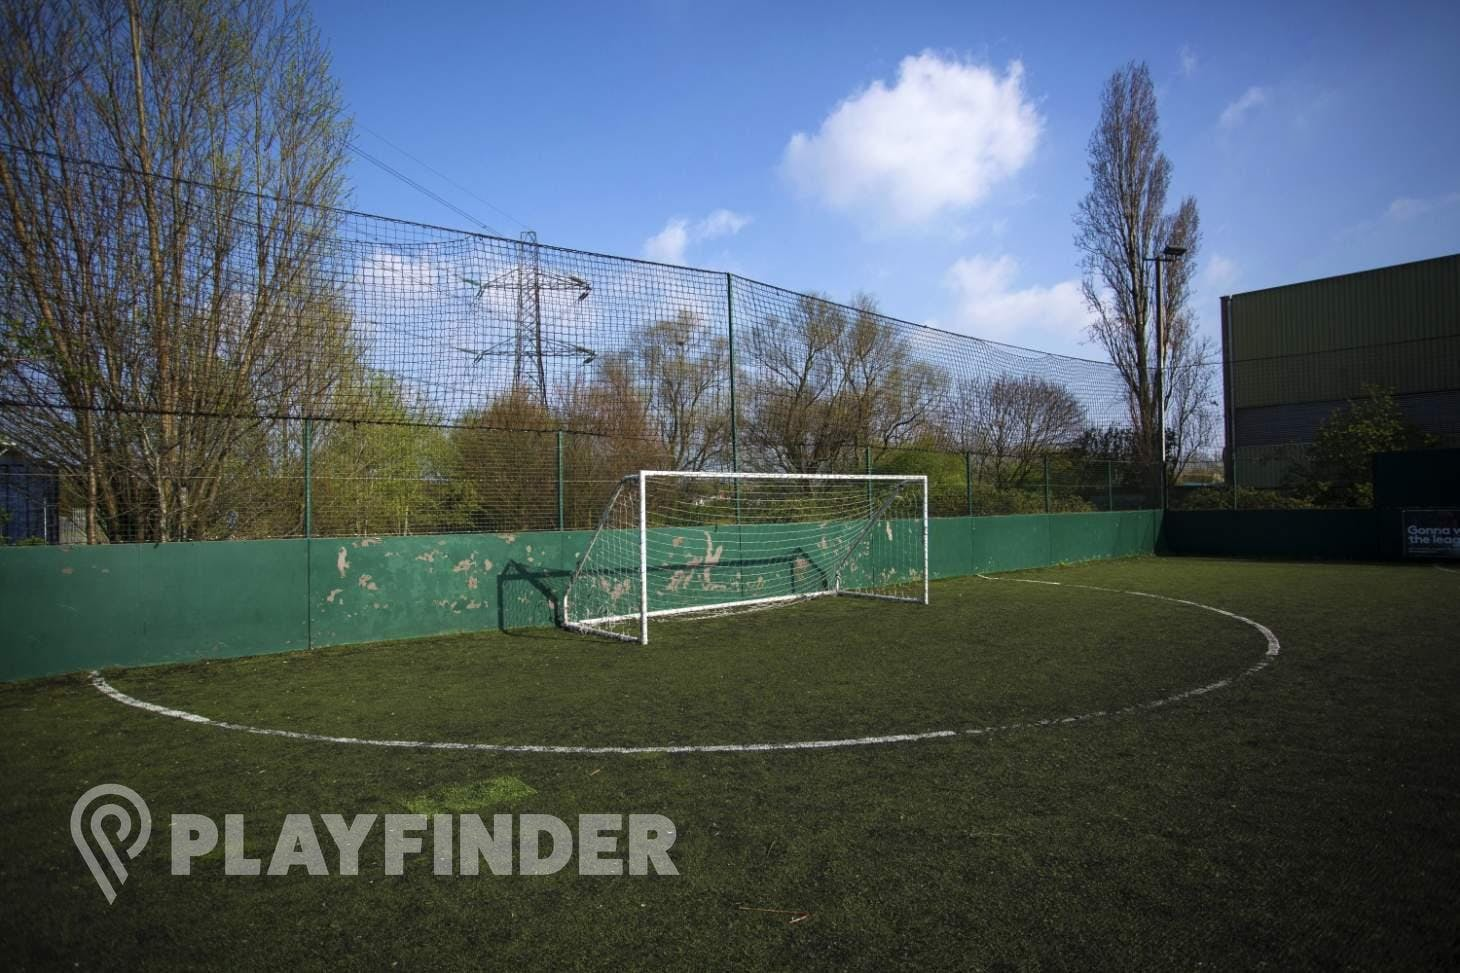 Powerleague Peterborough 7 a side | 3G Astroturf football pitch